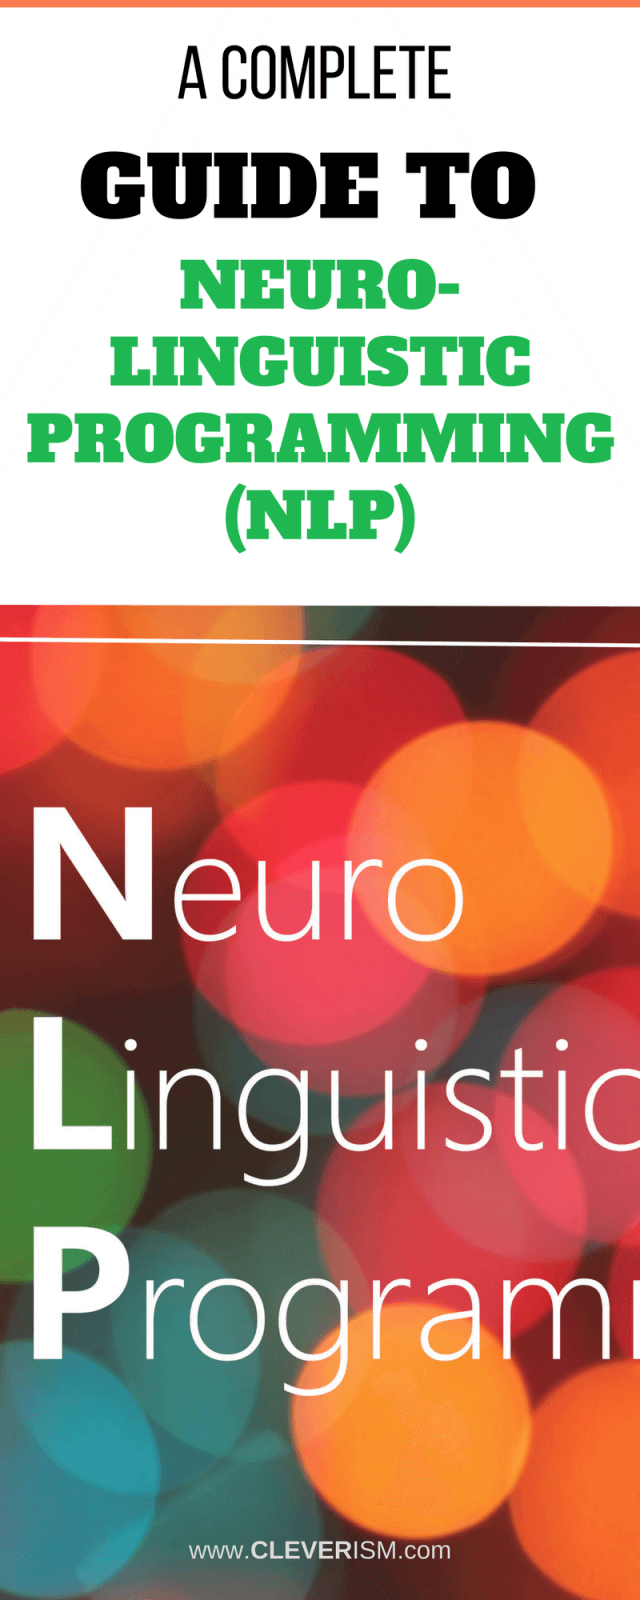 A Complete Guide to Neuro-Linguistic Programming (NLP). One of life's most